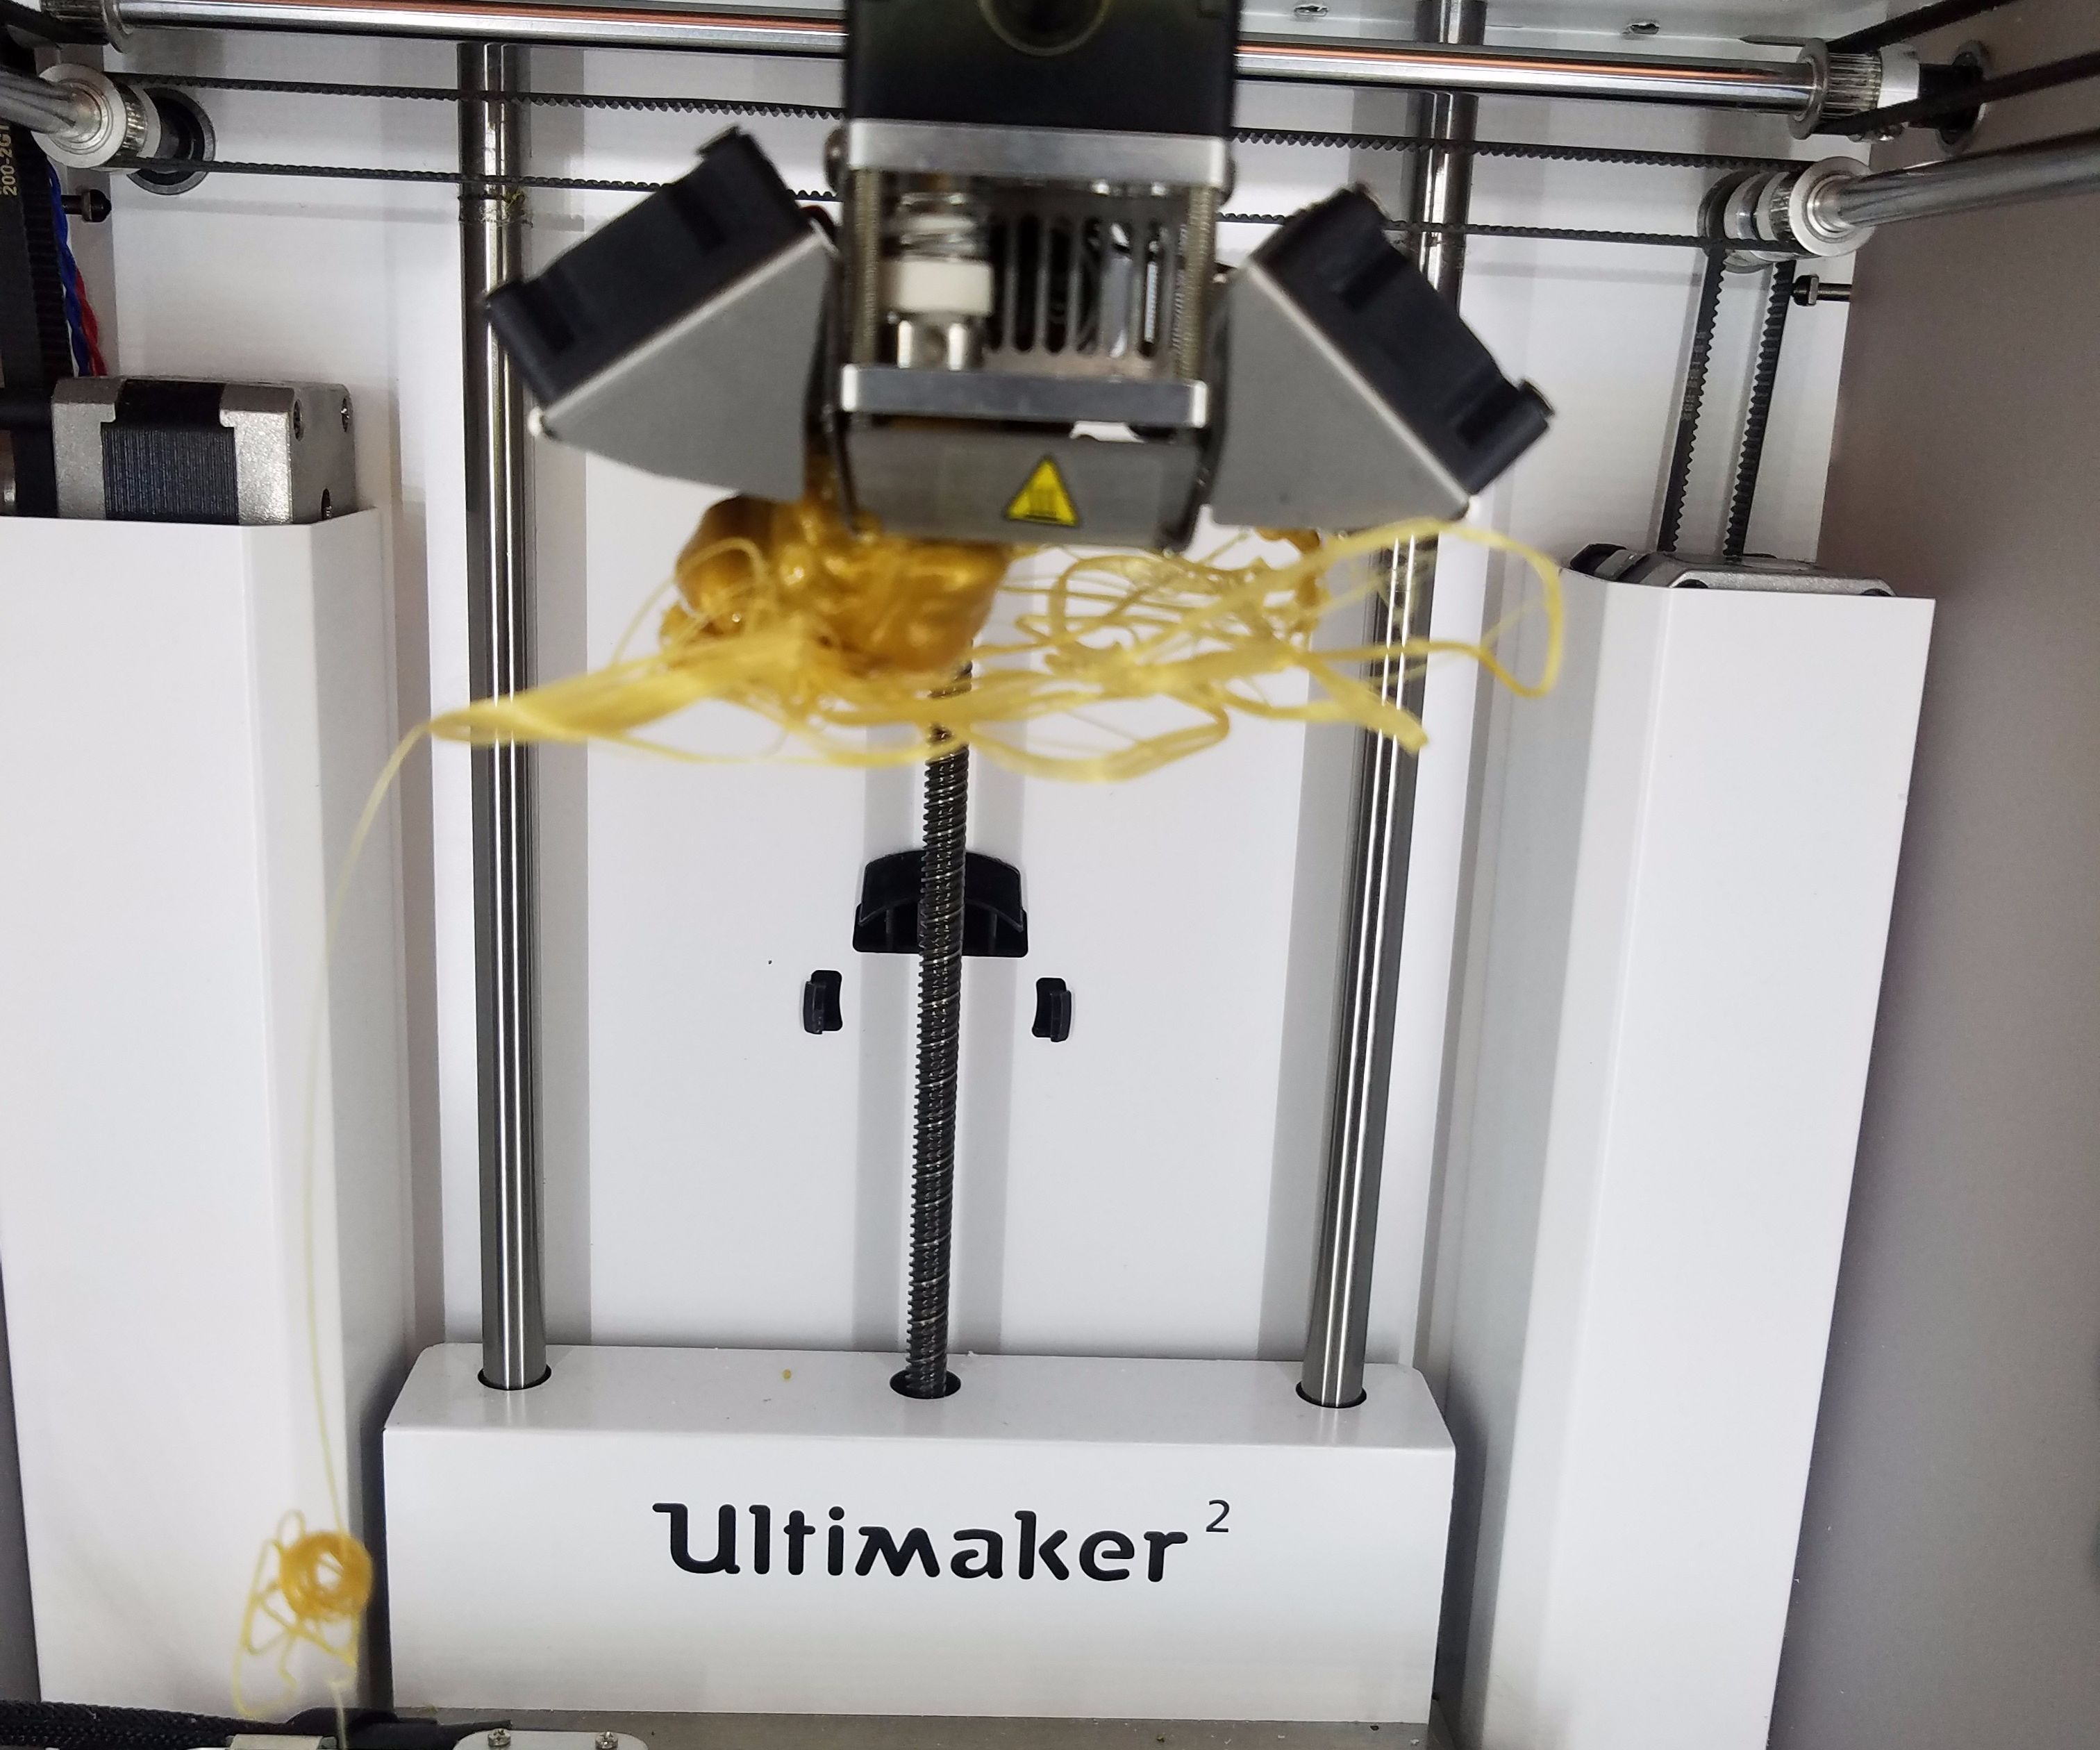 Cleaning a Ultimaker 2